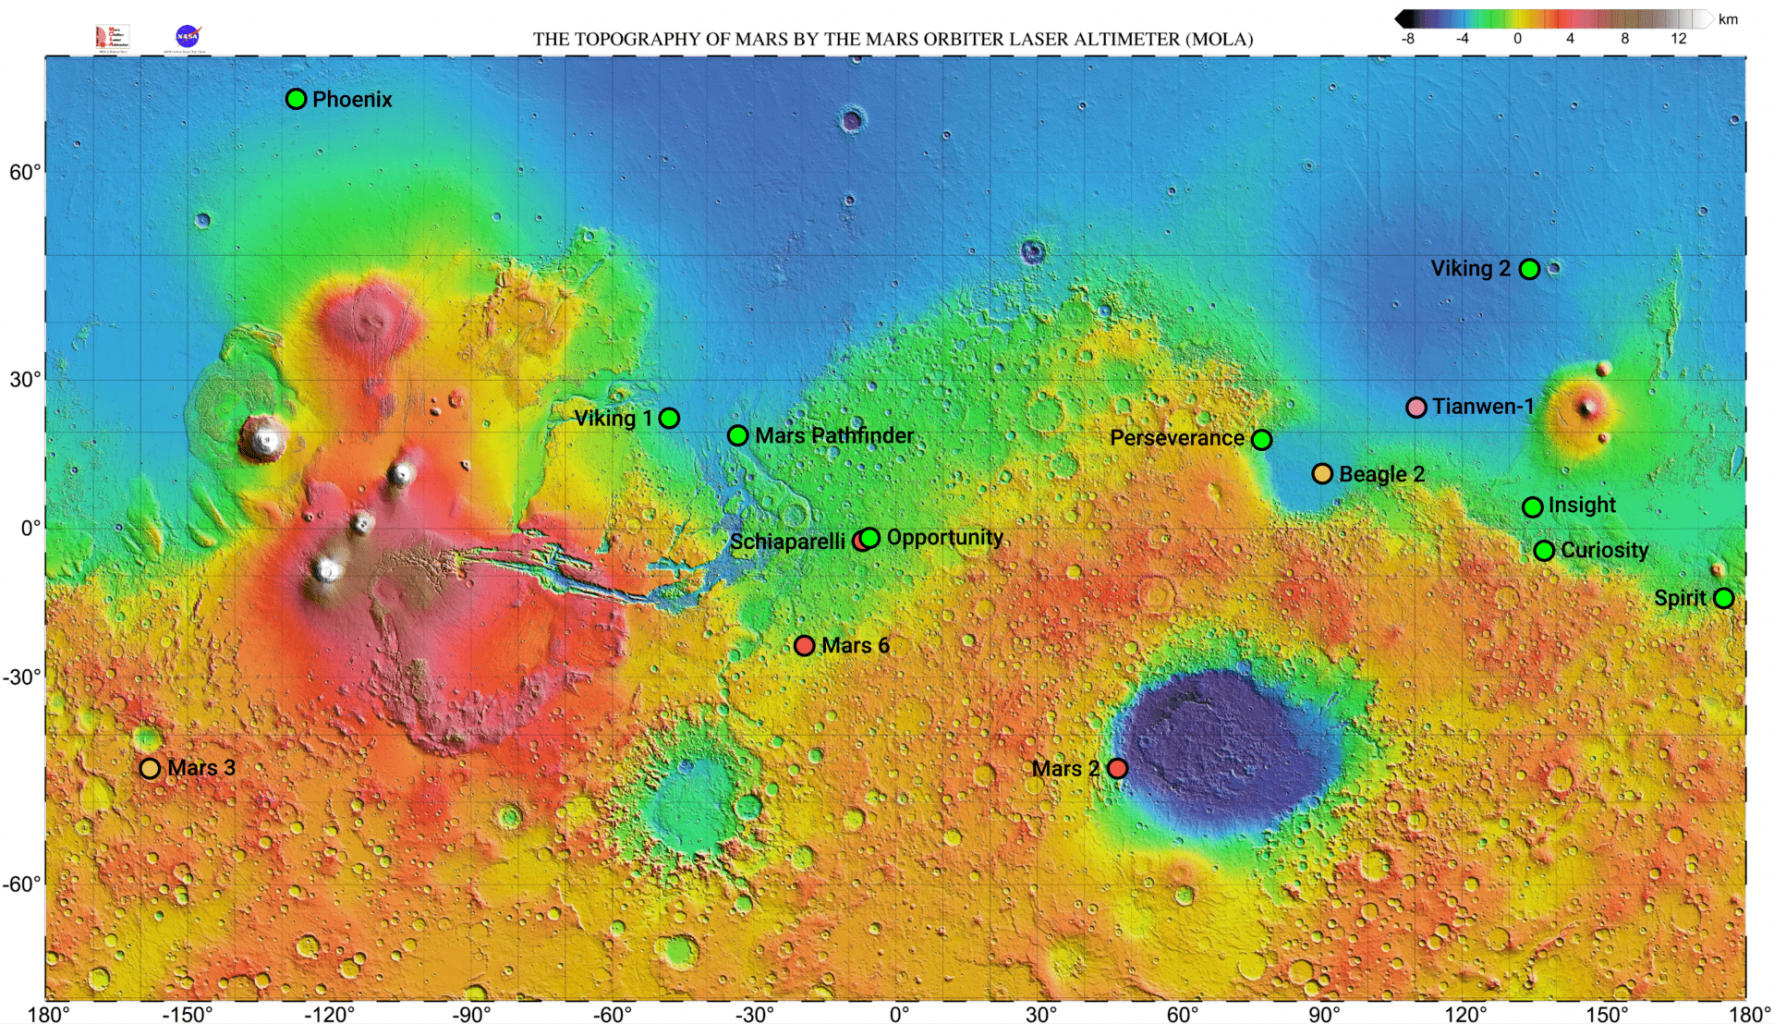 Previous missions to the Red Planet. You can see that China's Mars mission was sent to a location that has already been studied by several NASA missions in the past. Credit: Wikimedia Commons